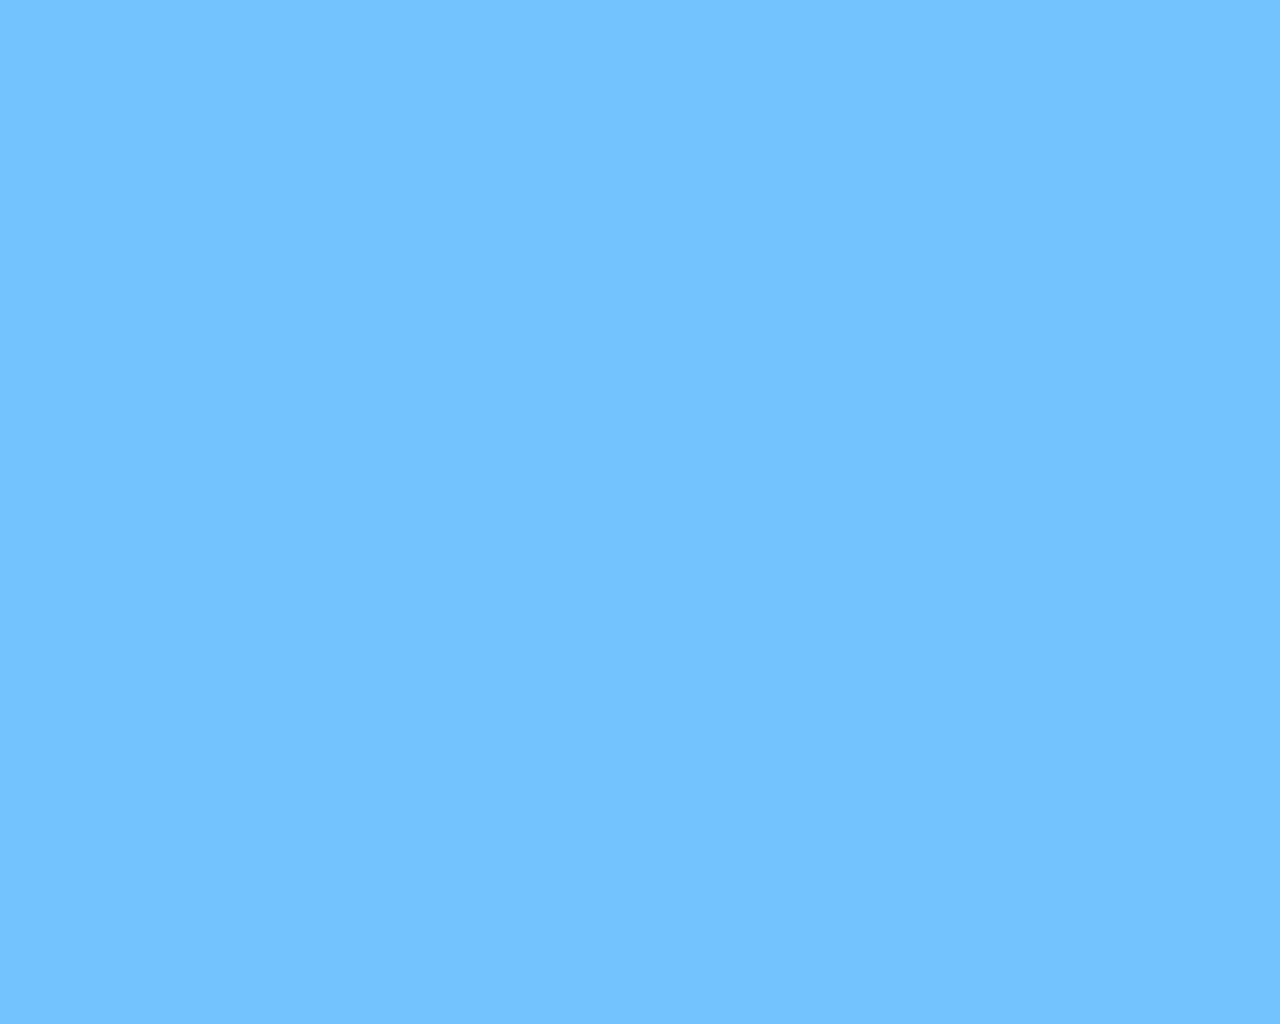 1280x1024 Maya Blue Solid Color Background